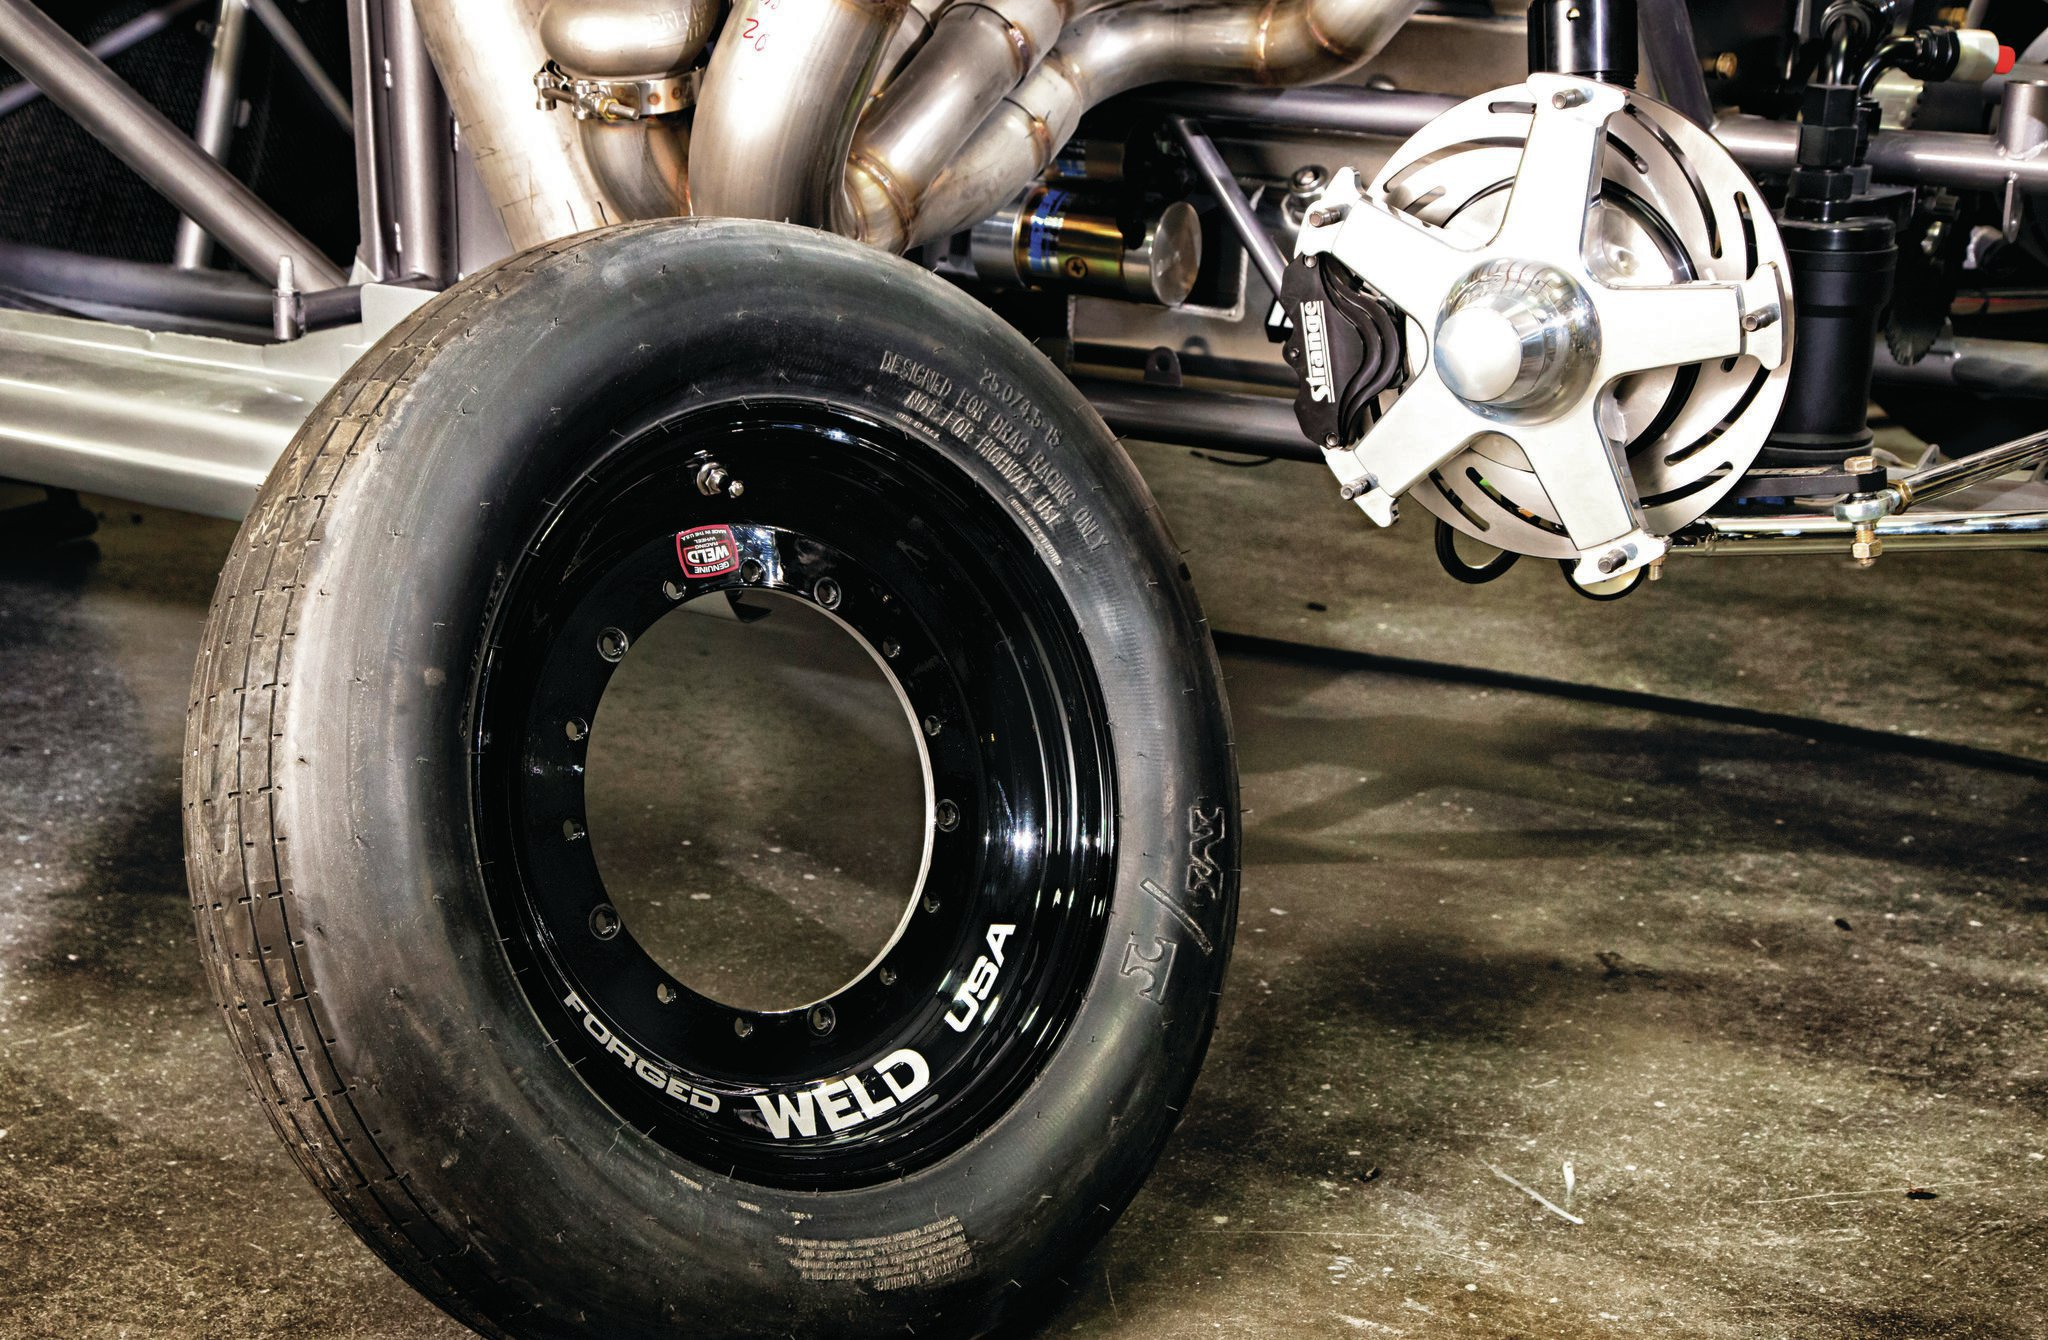 To accommodate the tire and wheel changes with a spindle-mount wheel, Weld Racing created new drag-only 15x3.5- and 15x10-inch wheels that will be called the 6-one-6 (in honor of the 6.16-second elapsed time). In recognition of the 219-mph speed, Larry's Kansas City compadres at Weld will only make 219 of them, so someone will be left with a loose spare somewhere. We bet it hangs on Larry's shop wall.